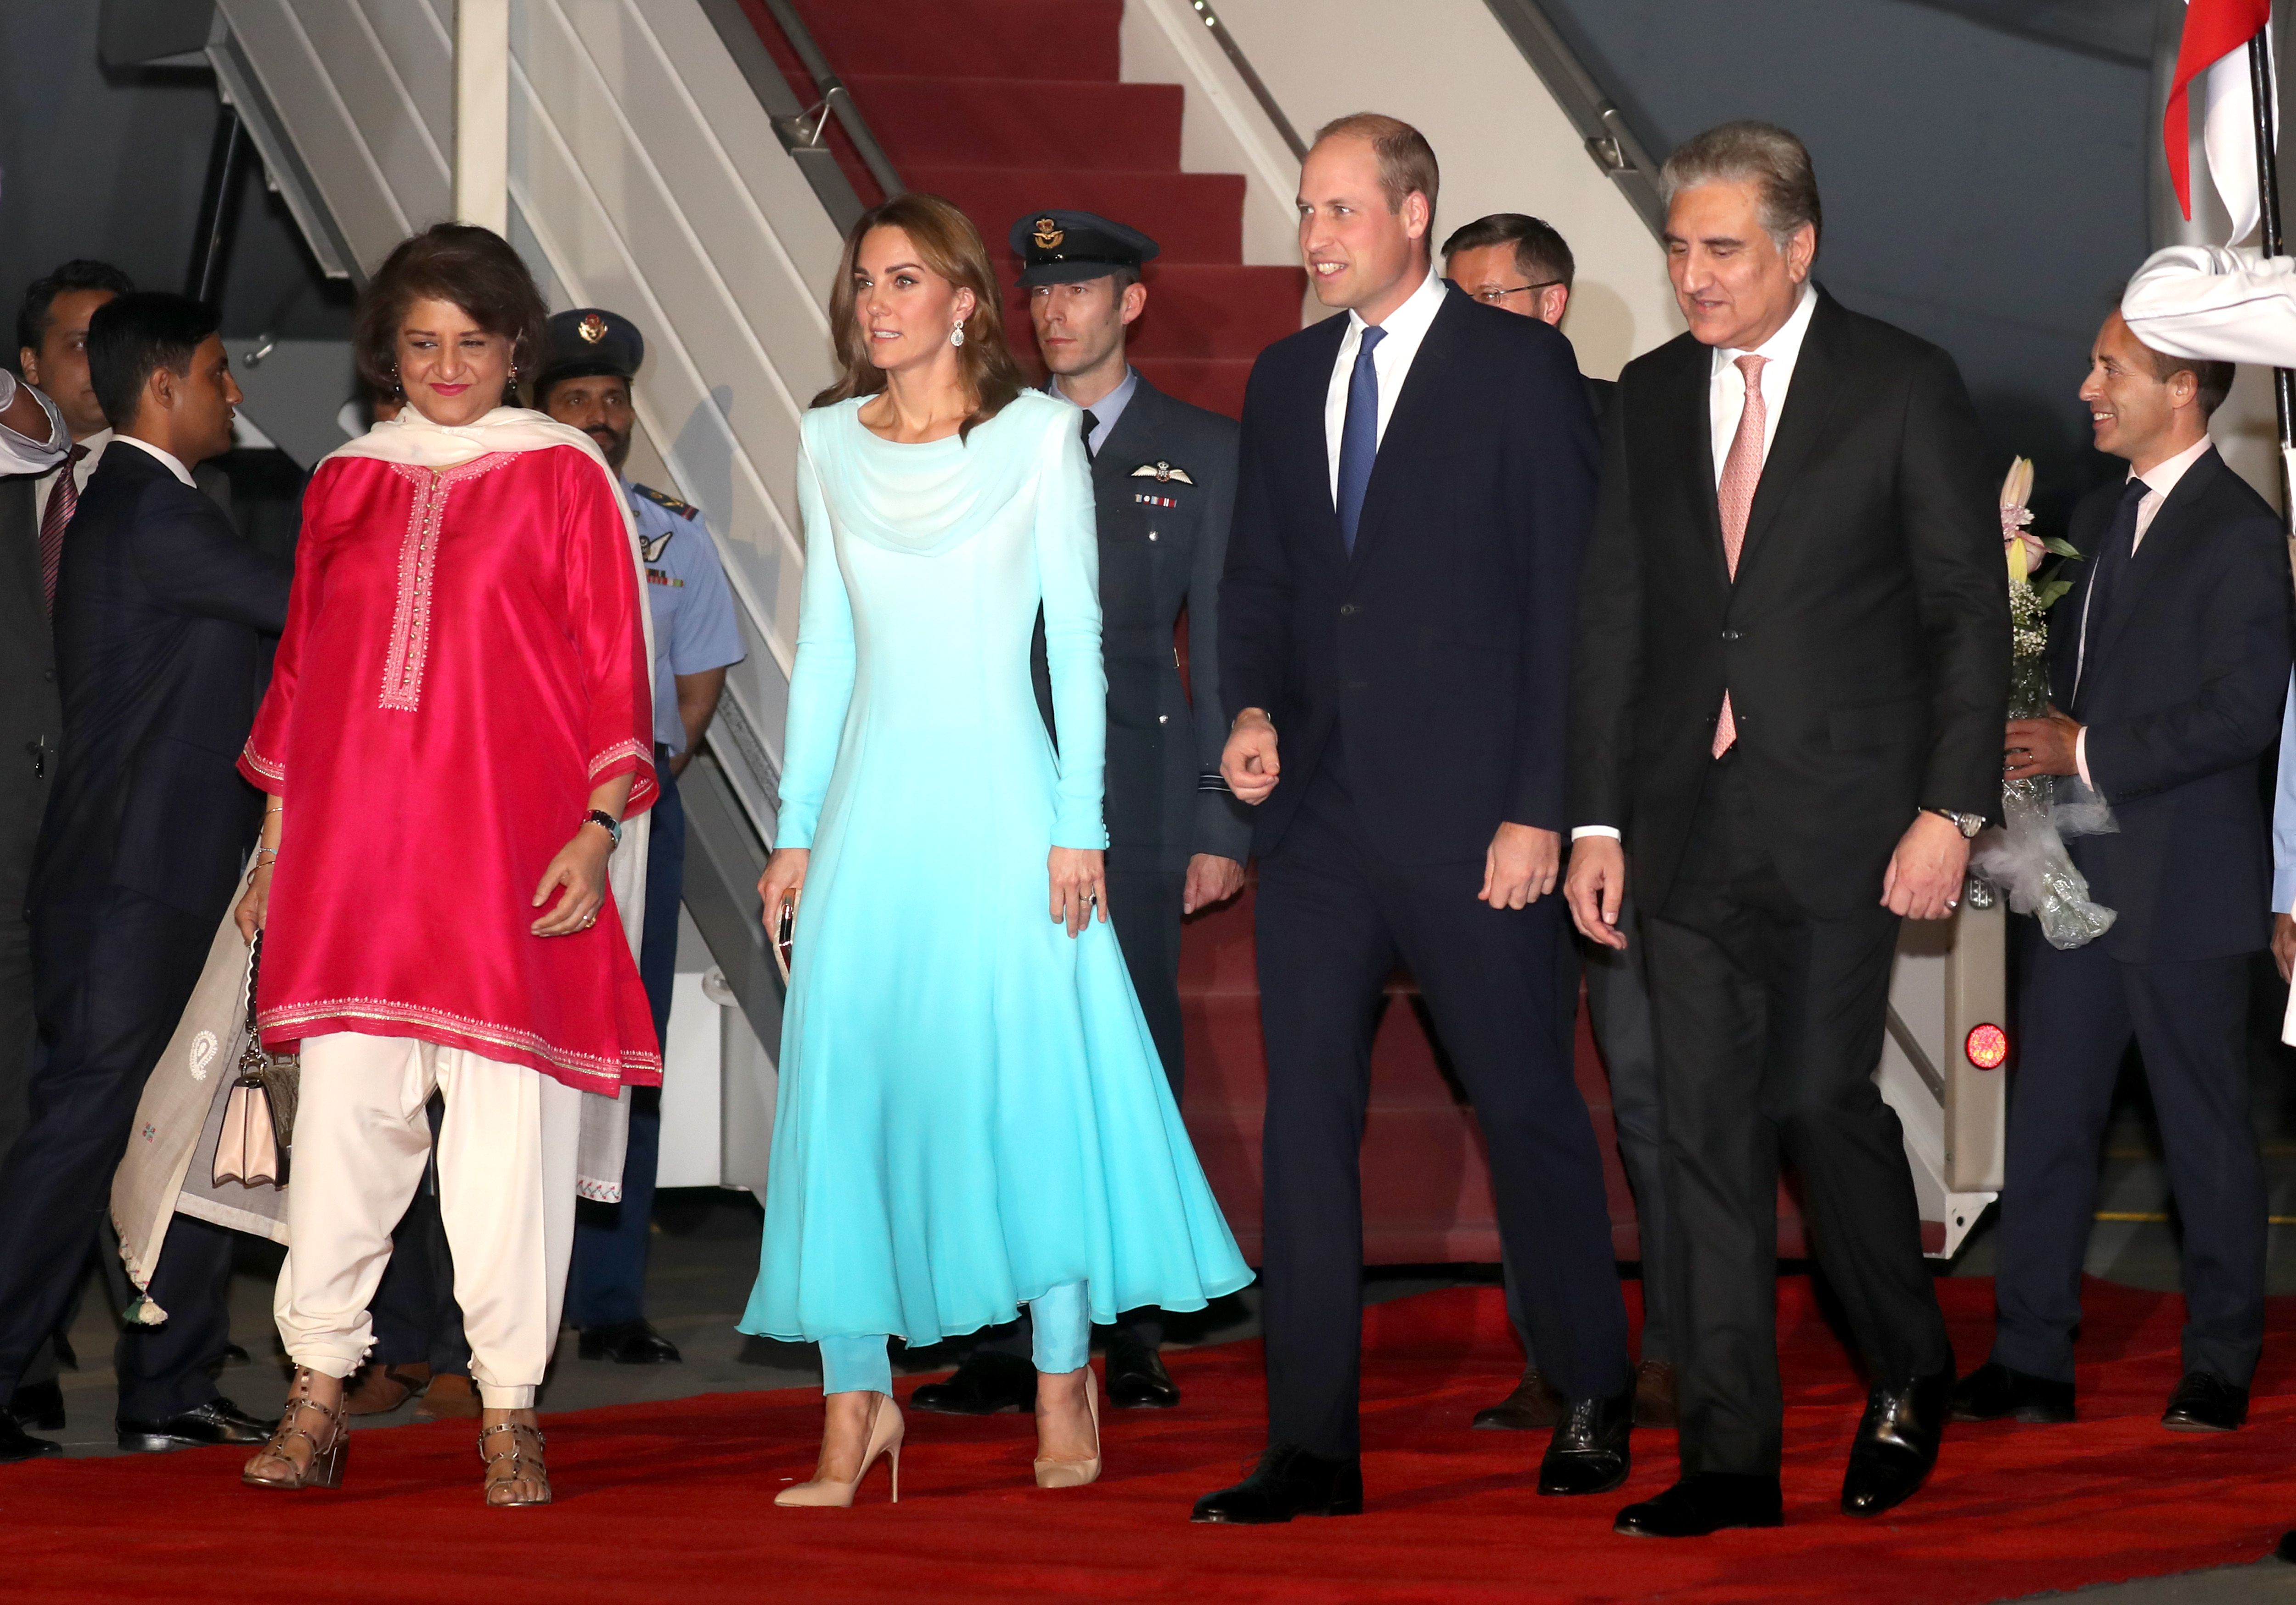 Every Photo from Kate Middleton and Prince William's Royal Tour of Pakistan